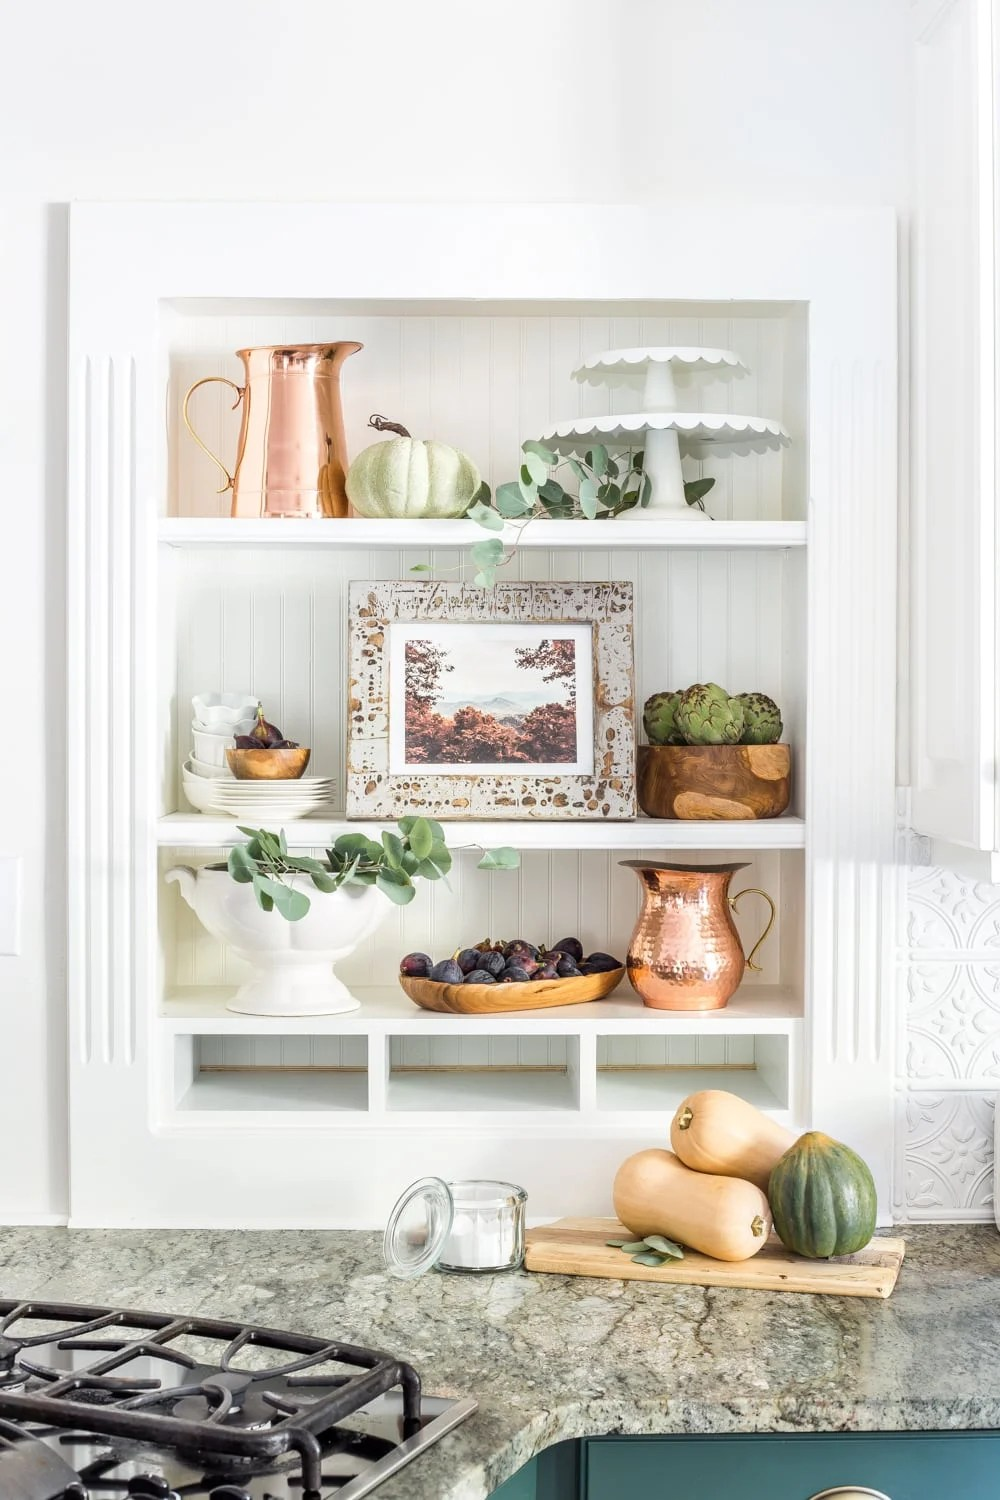 kitchen shelves decorated for fall with framed art and copper pitchers and pumpkins